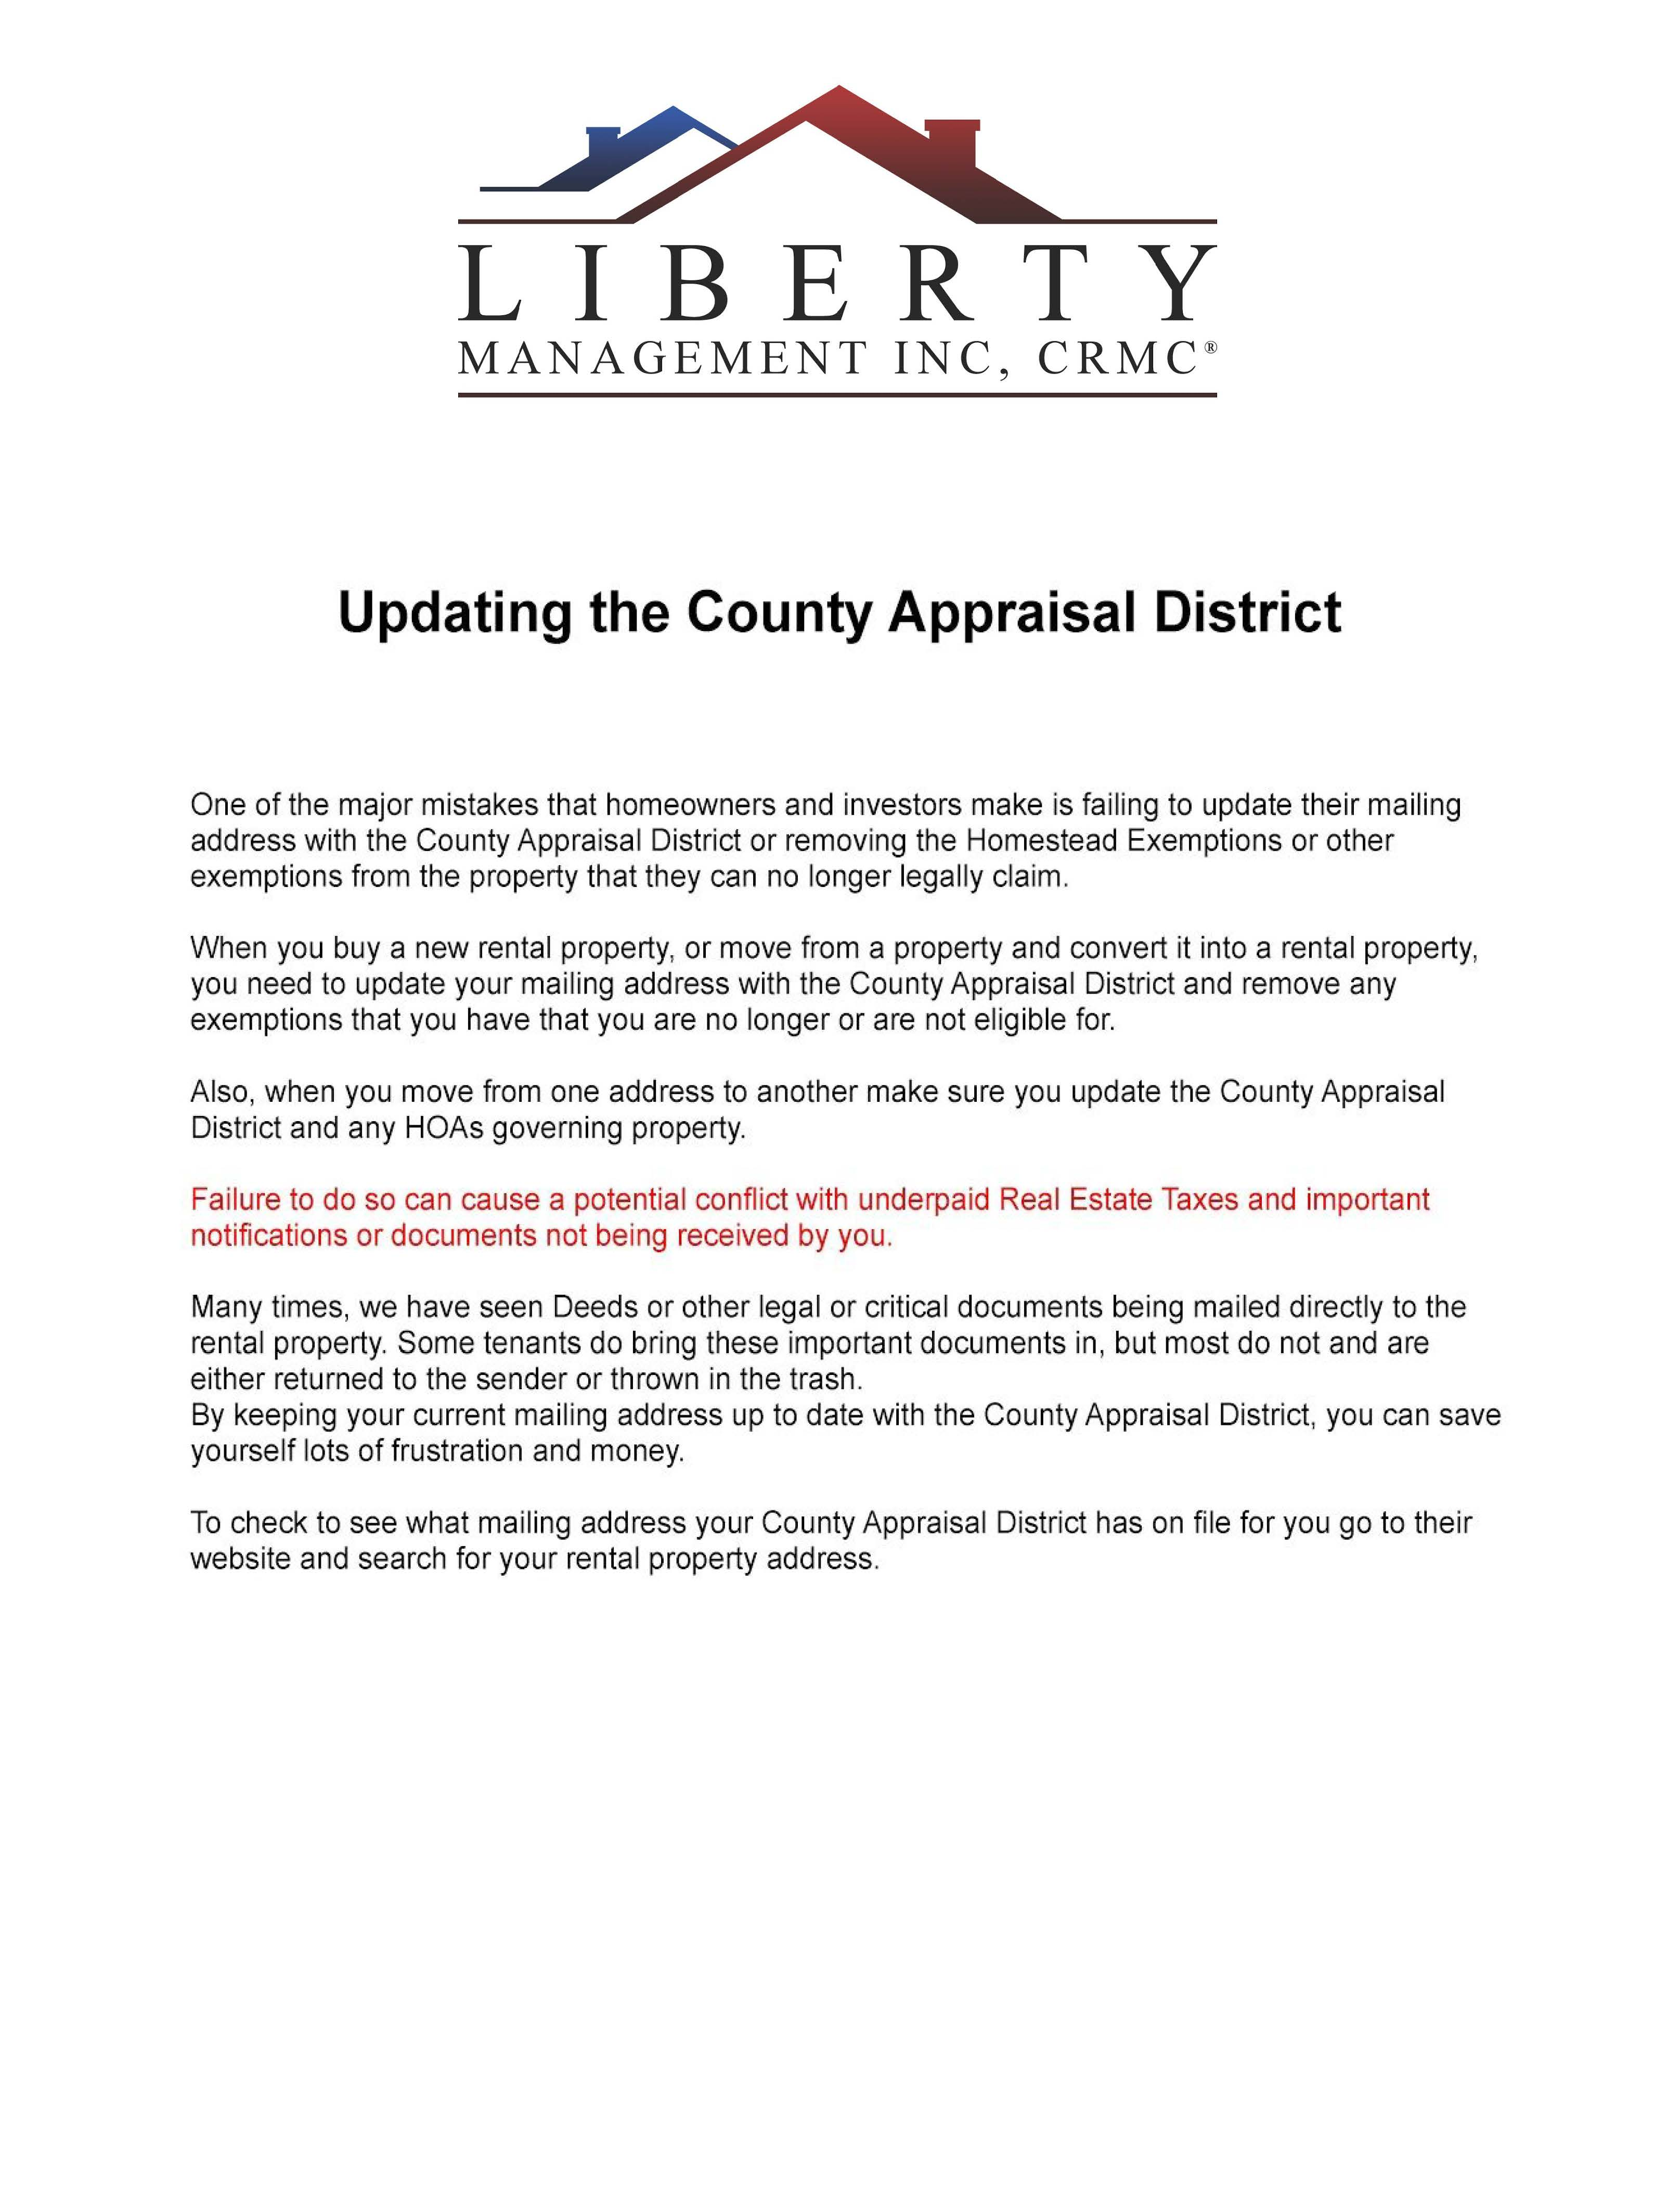 Updating the Bexar County Appraisal District